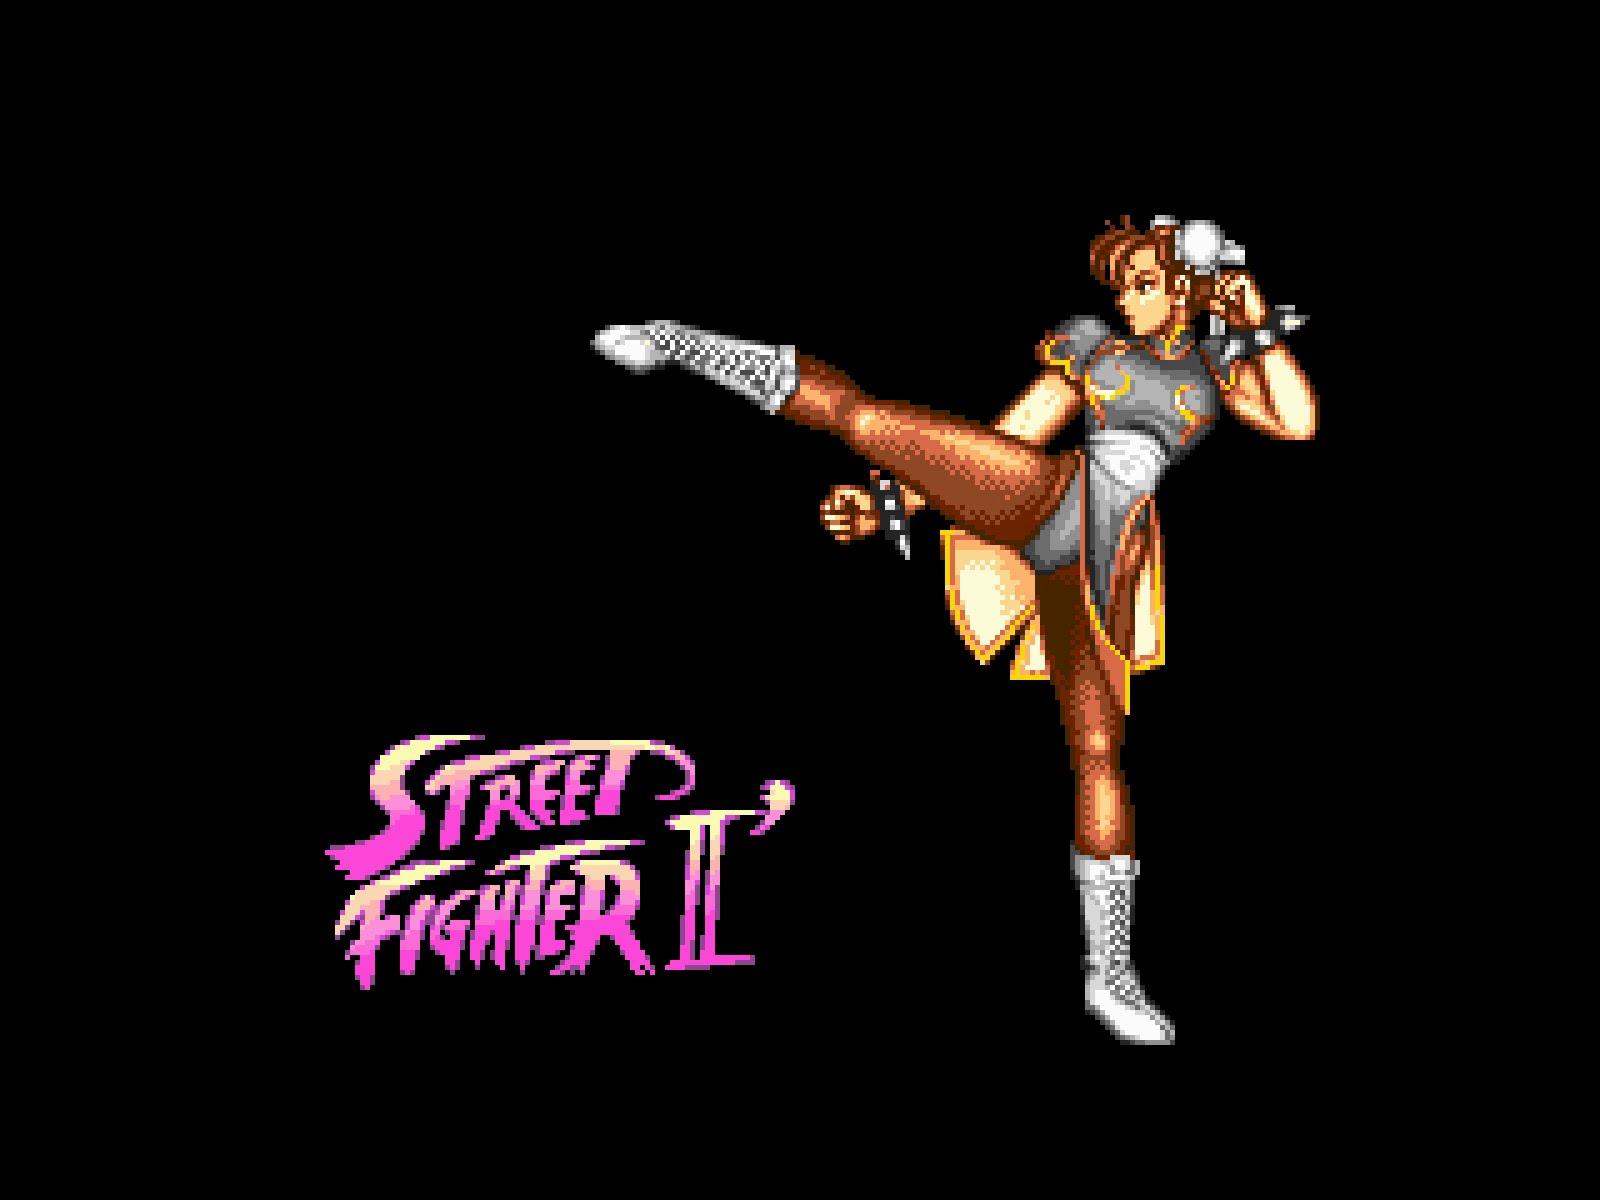 Chun-Li from Street Fighter.